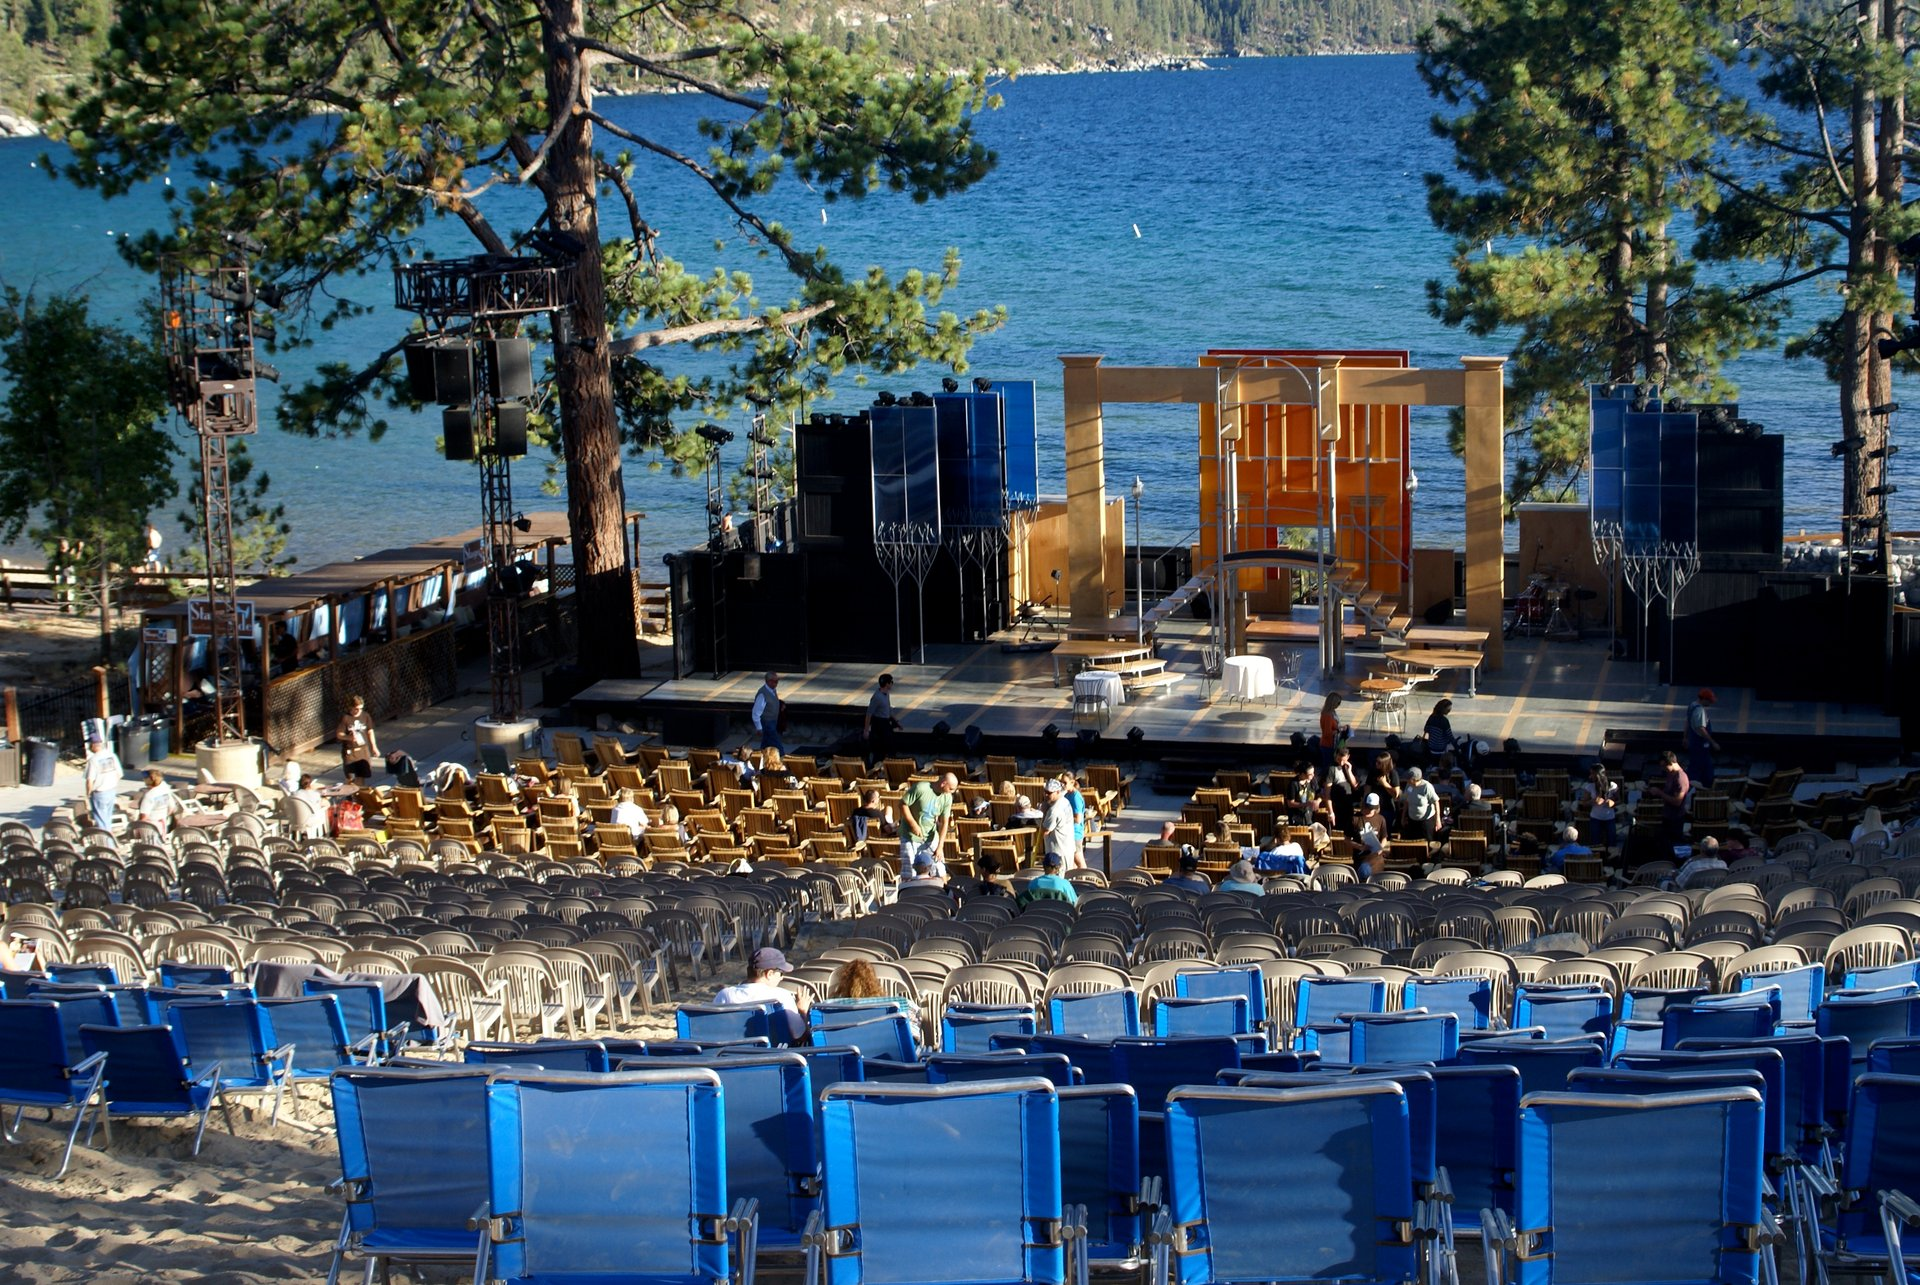 Lake Tahoe Shakespeare Festival in Lake Tahoe - Best Season 2019